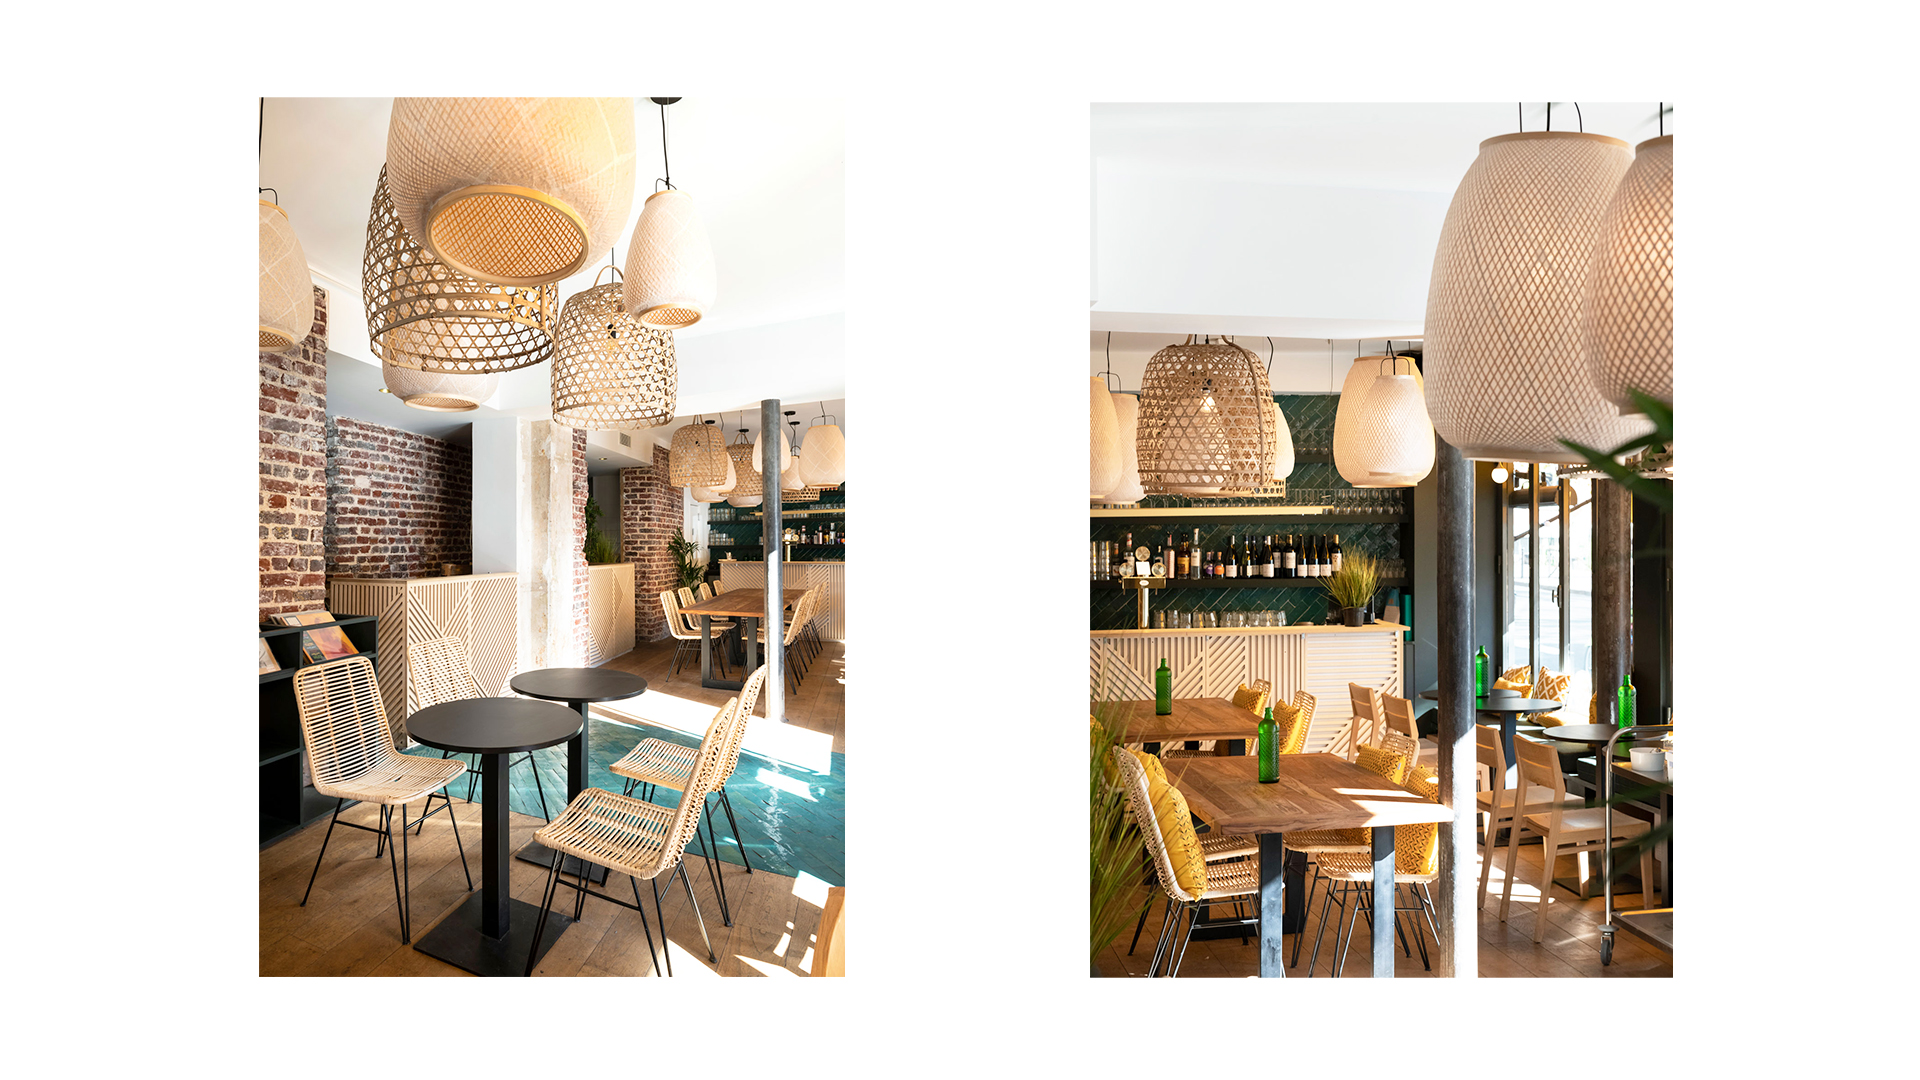 Djawa - restaurant - interior design - Paris - lighting - light - indonesian